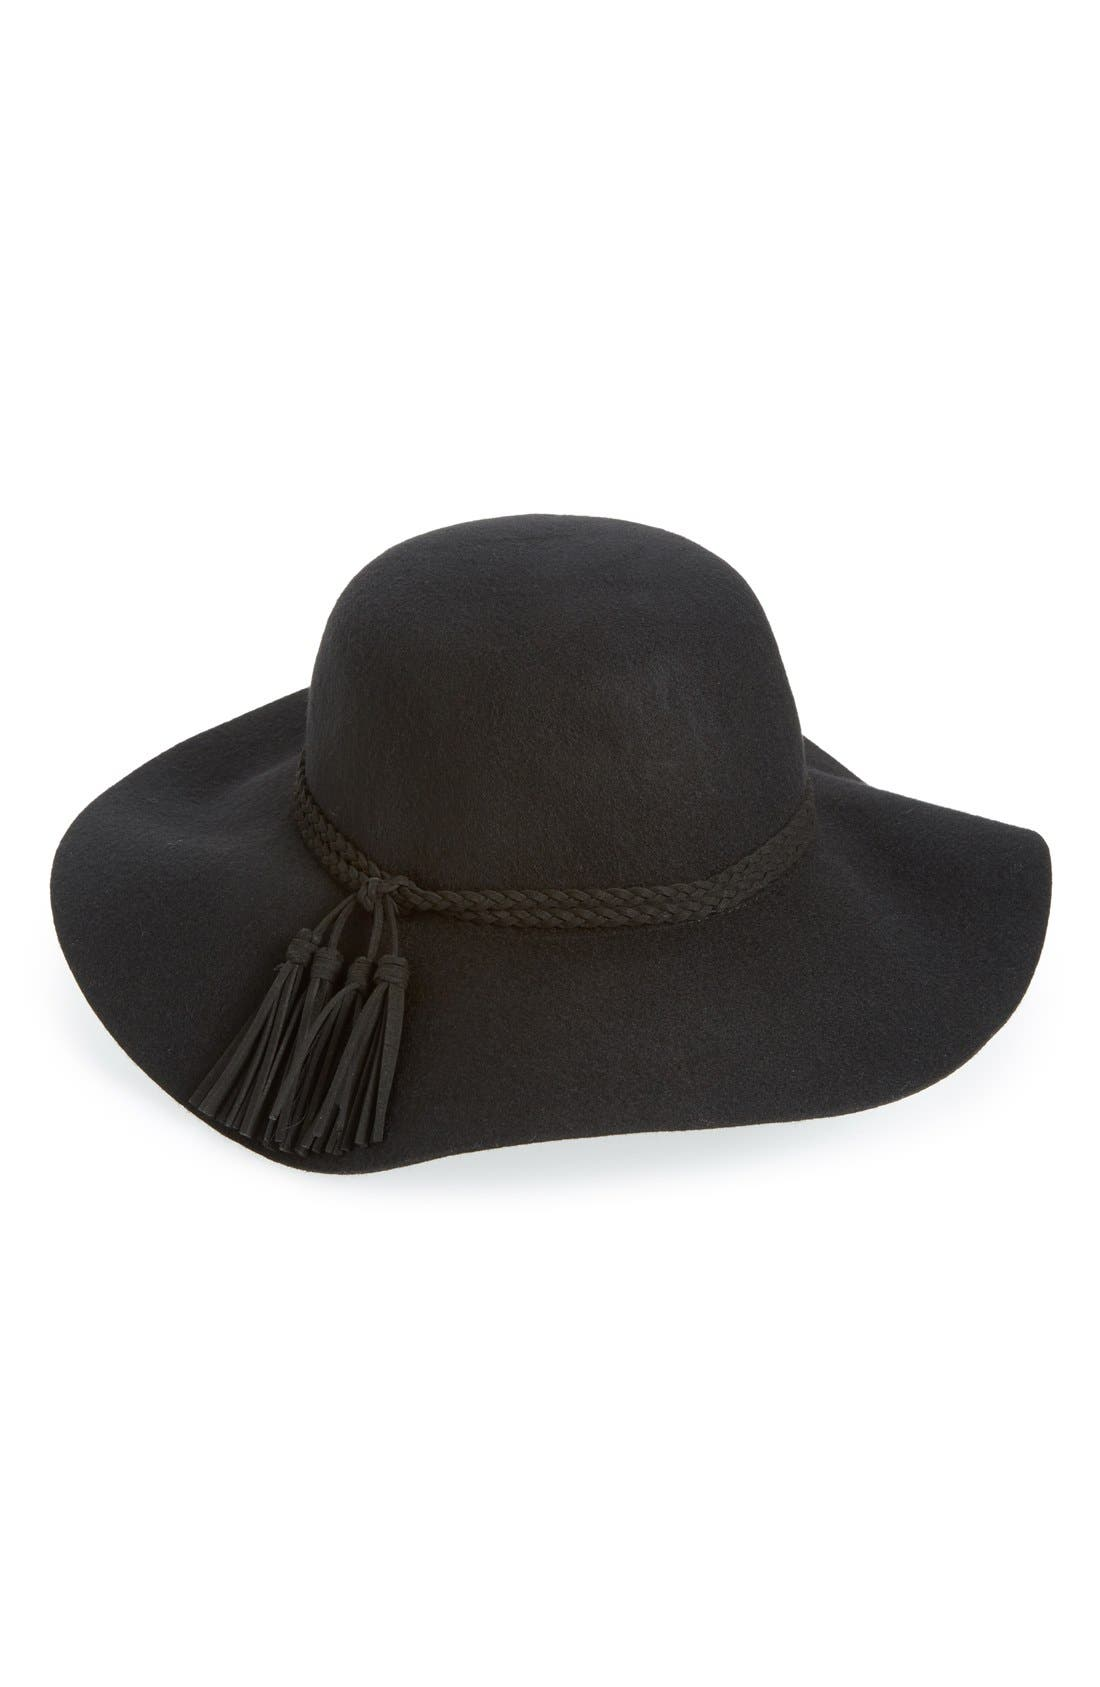 Main Image - Phase 3 Tassel Band Floppy Hat